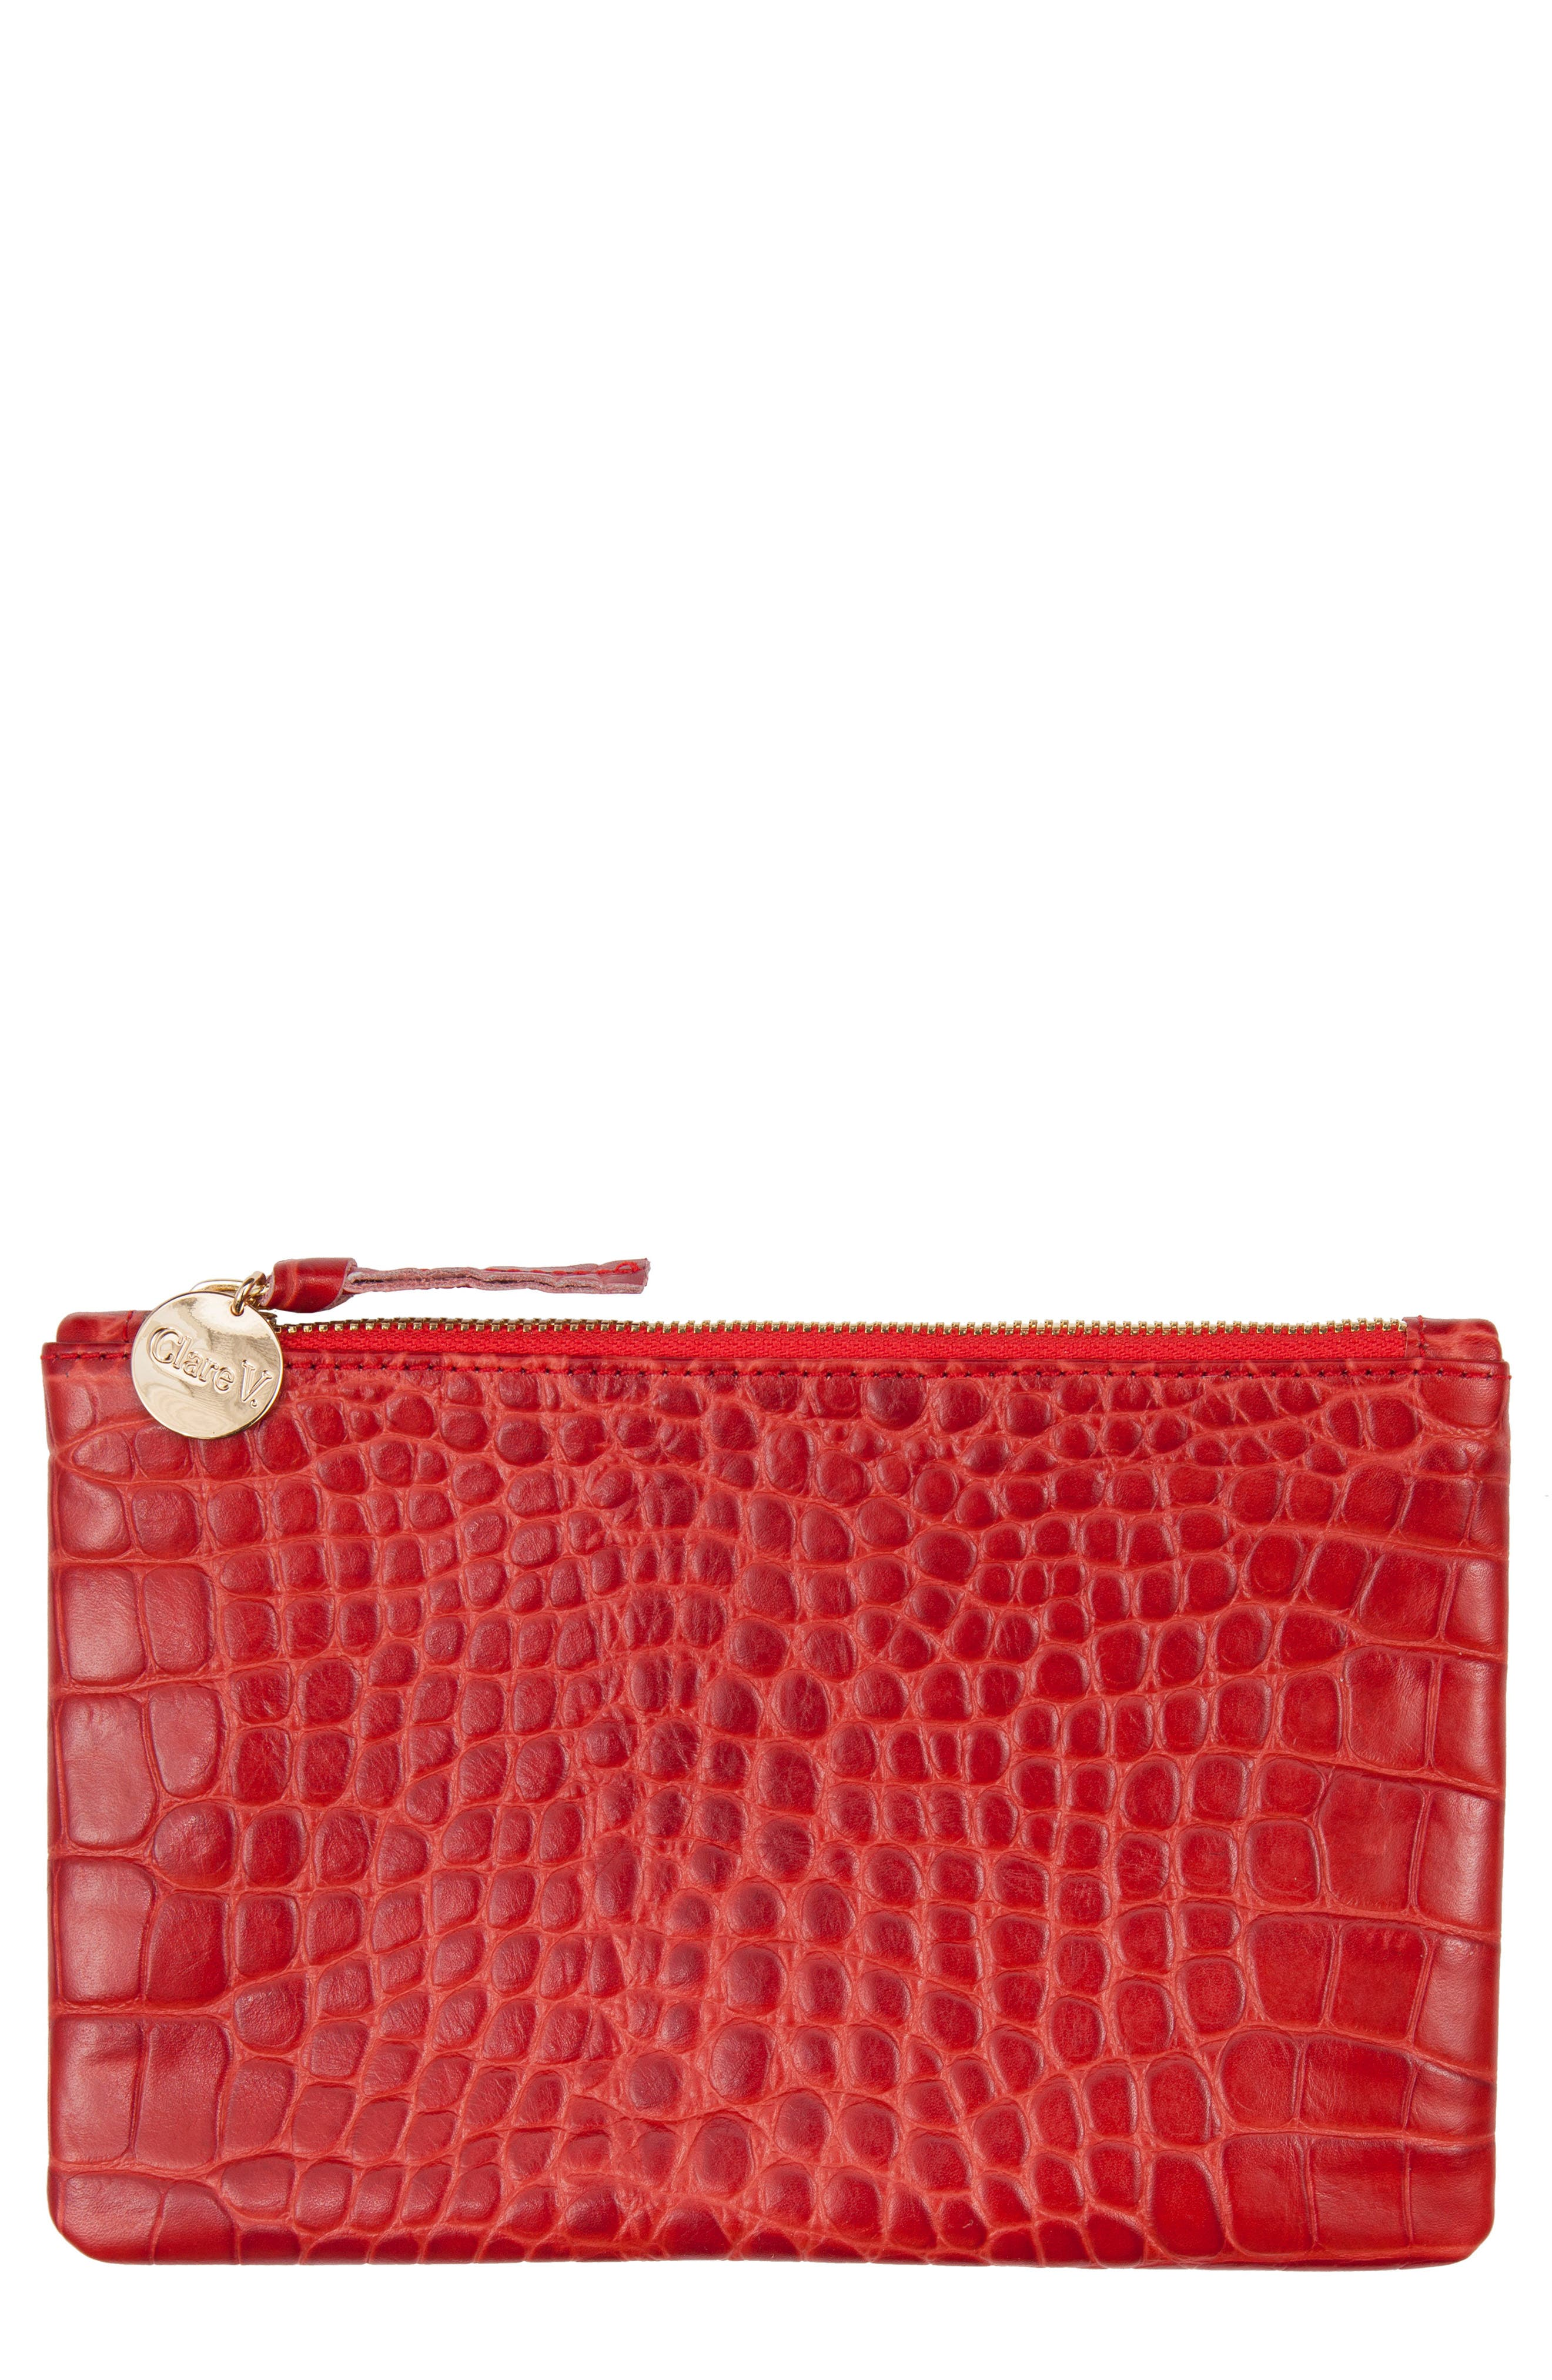 Croc Embossed Leather Wallet Clutch,                             Main thumbnail 1, color,                             Red Croco